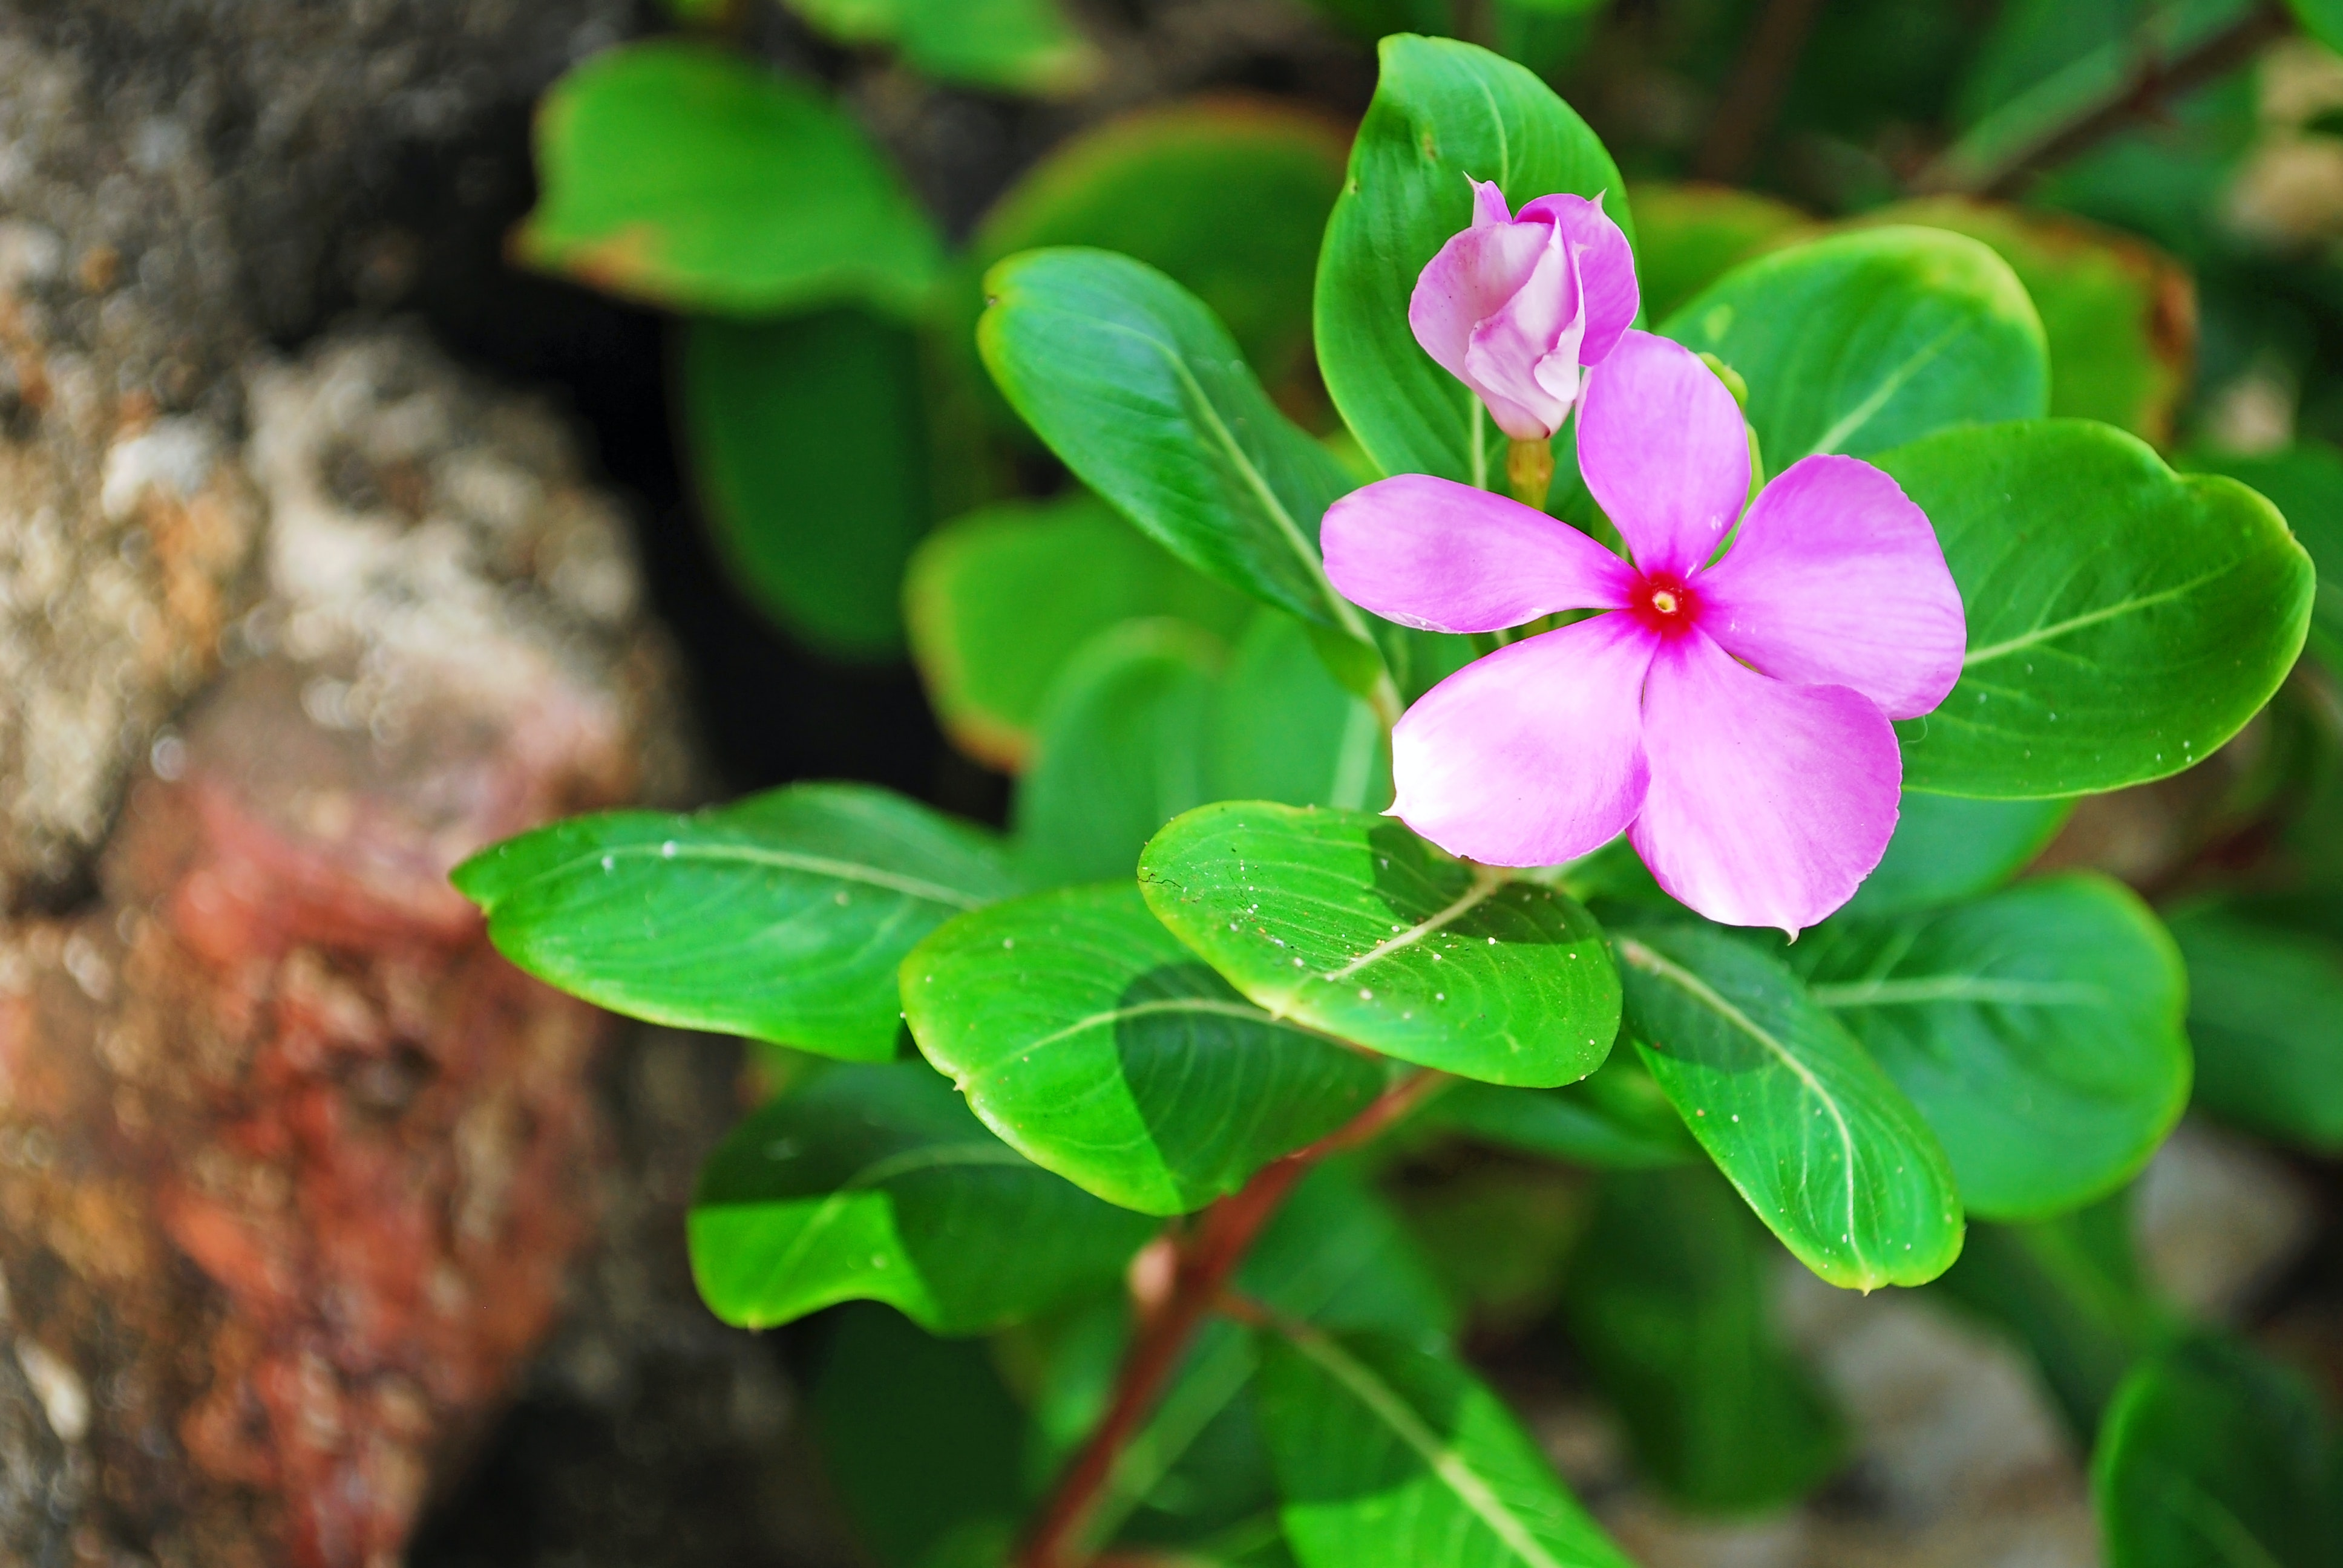 The Madagascar Periwinkle plant. (Shutterstock)